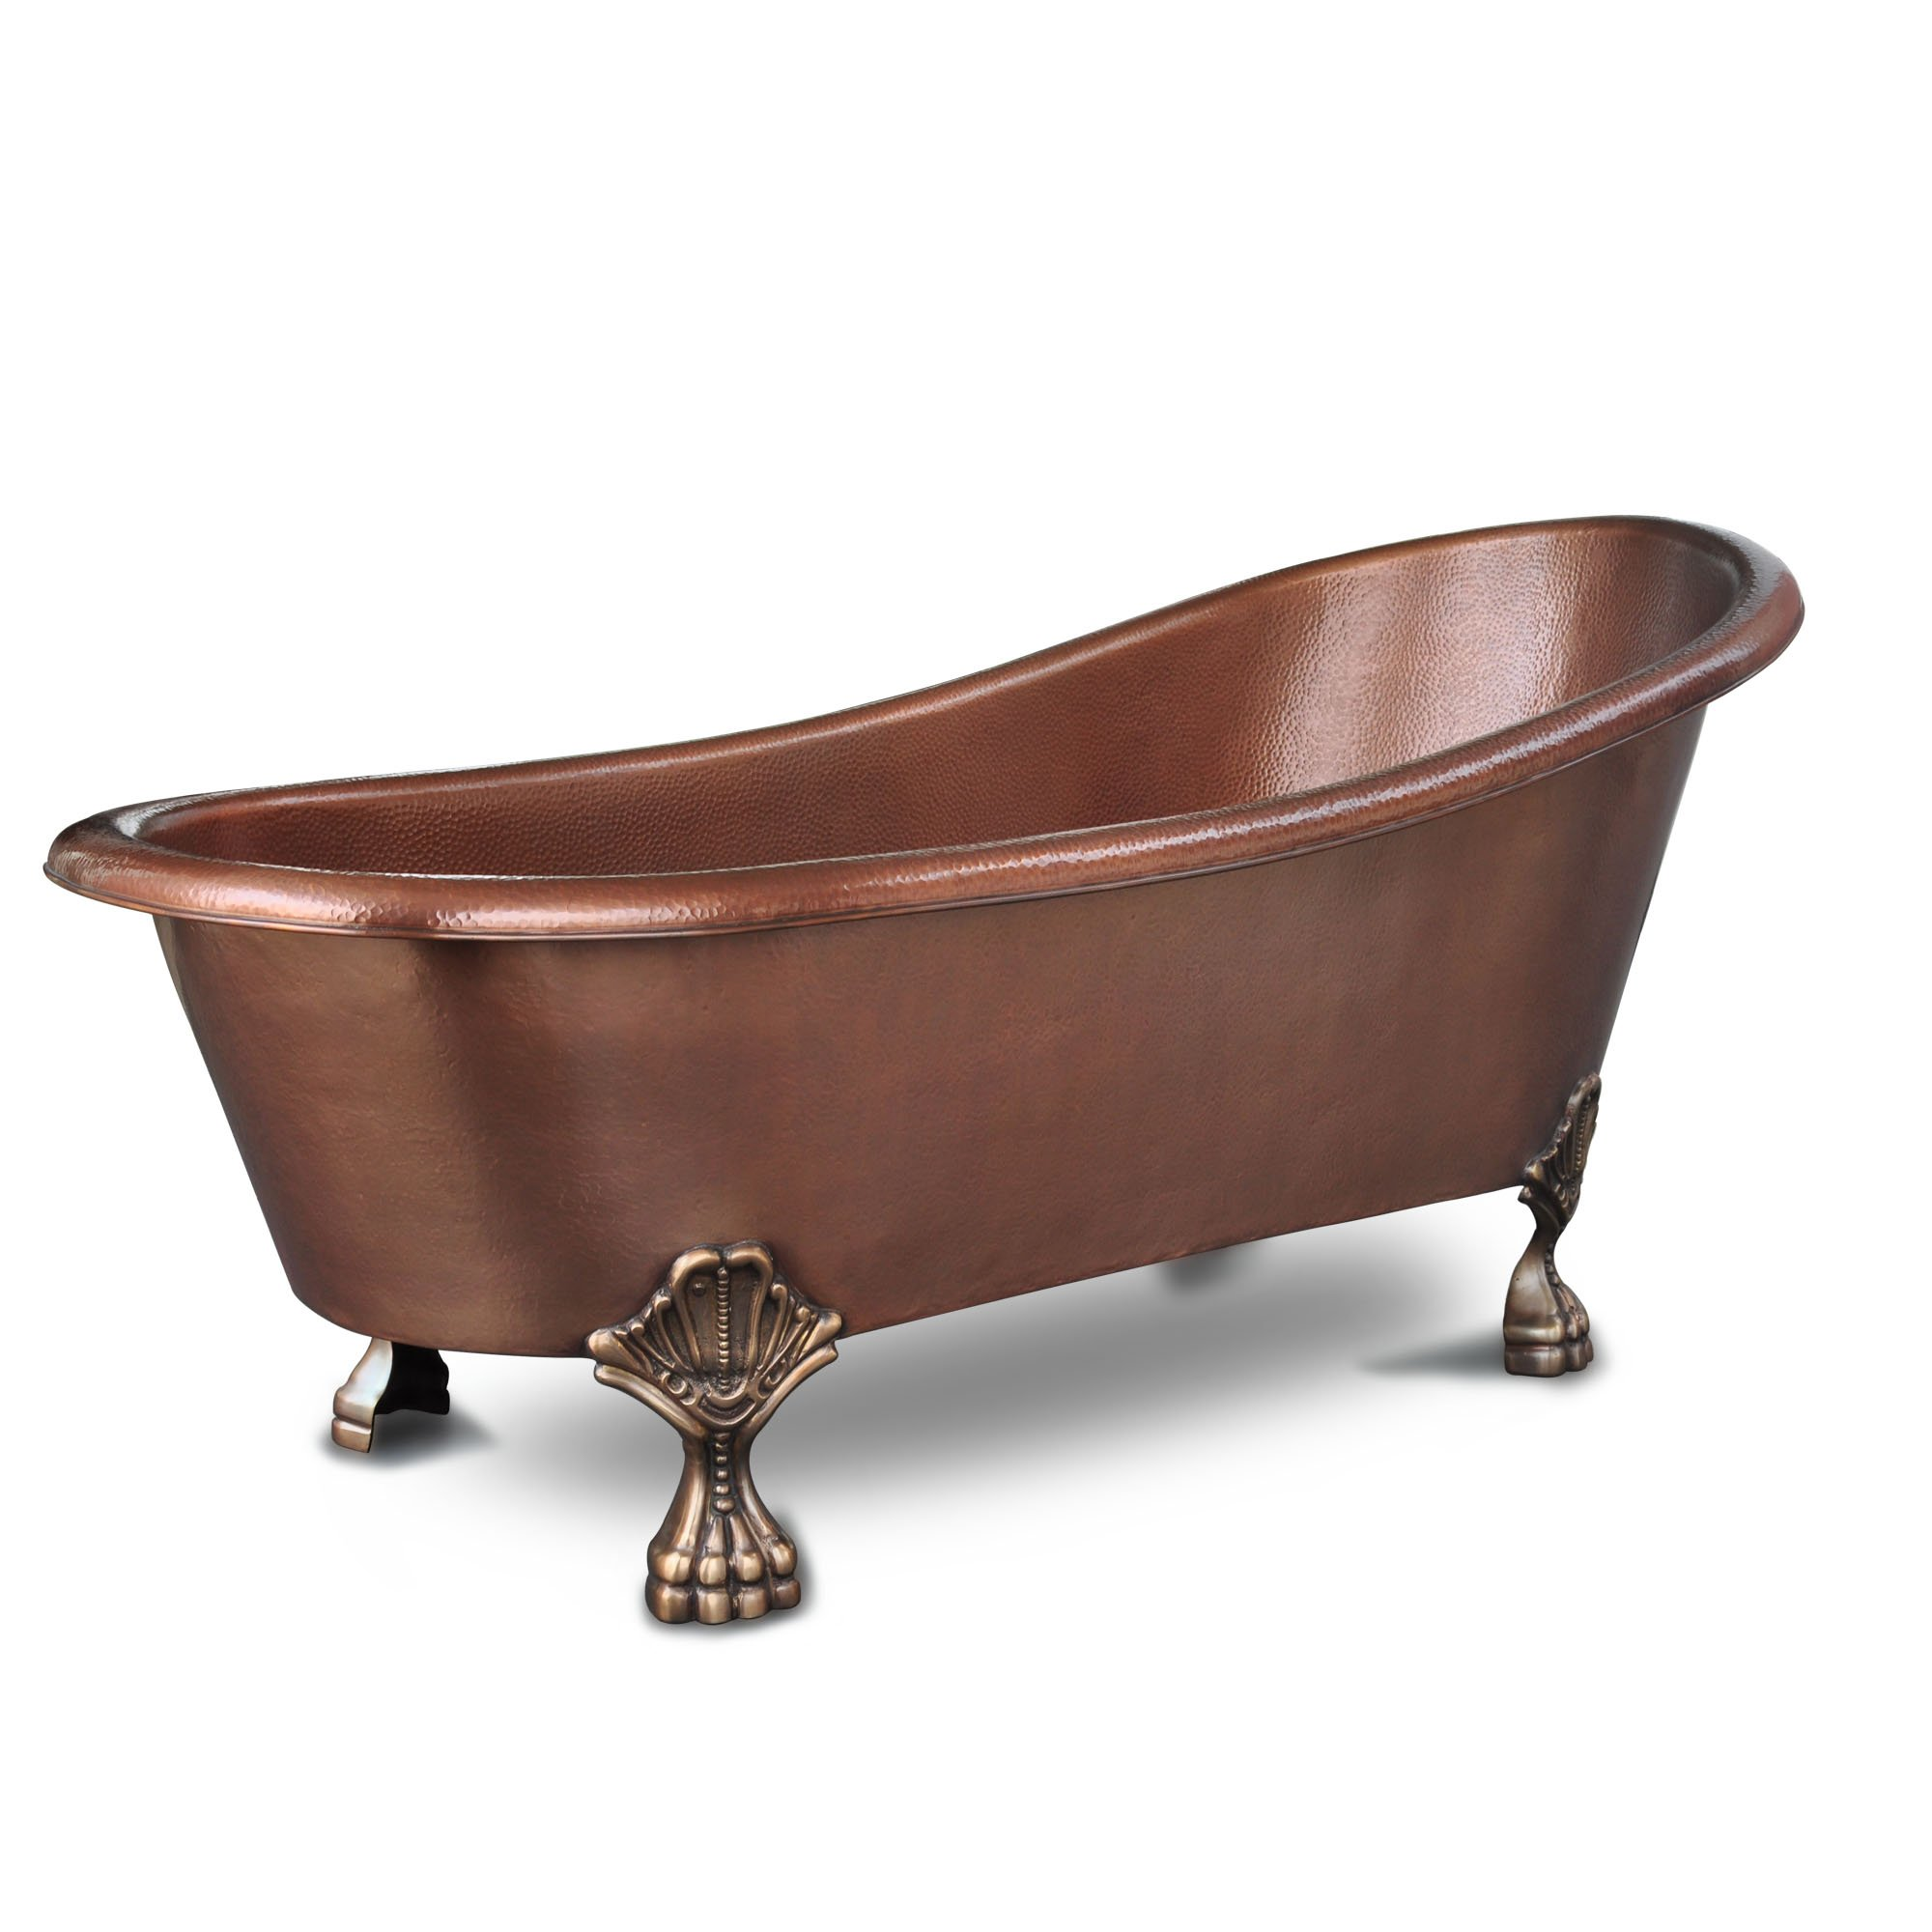 Sinkology TBT-6631CL Heisenberg Handmade Pure Solid Freestanding Claw Foot Bath Tub, 5.5', Antique Copper by Sinkology